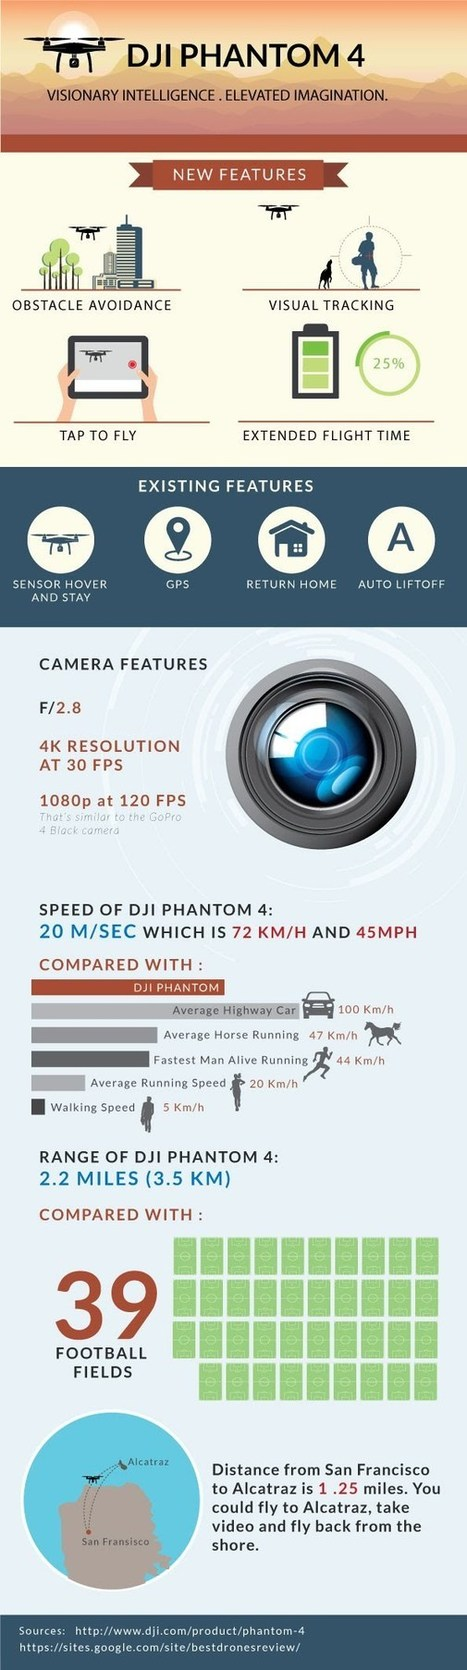 DJI Phantom 4 - What Makes It The Intelligent Quadcopter? | All Infographics | Scoop.it